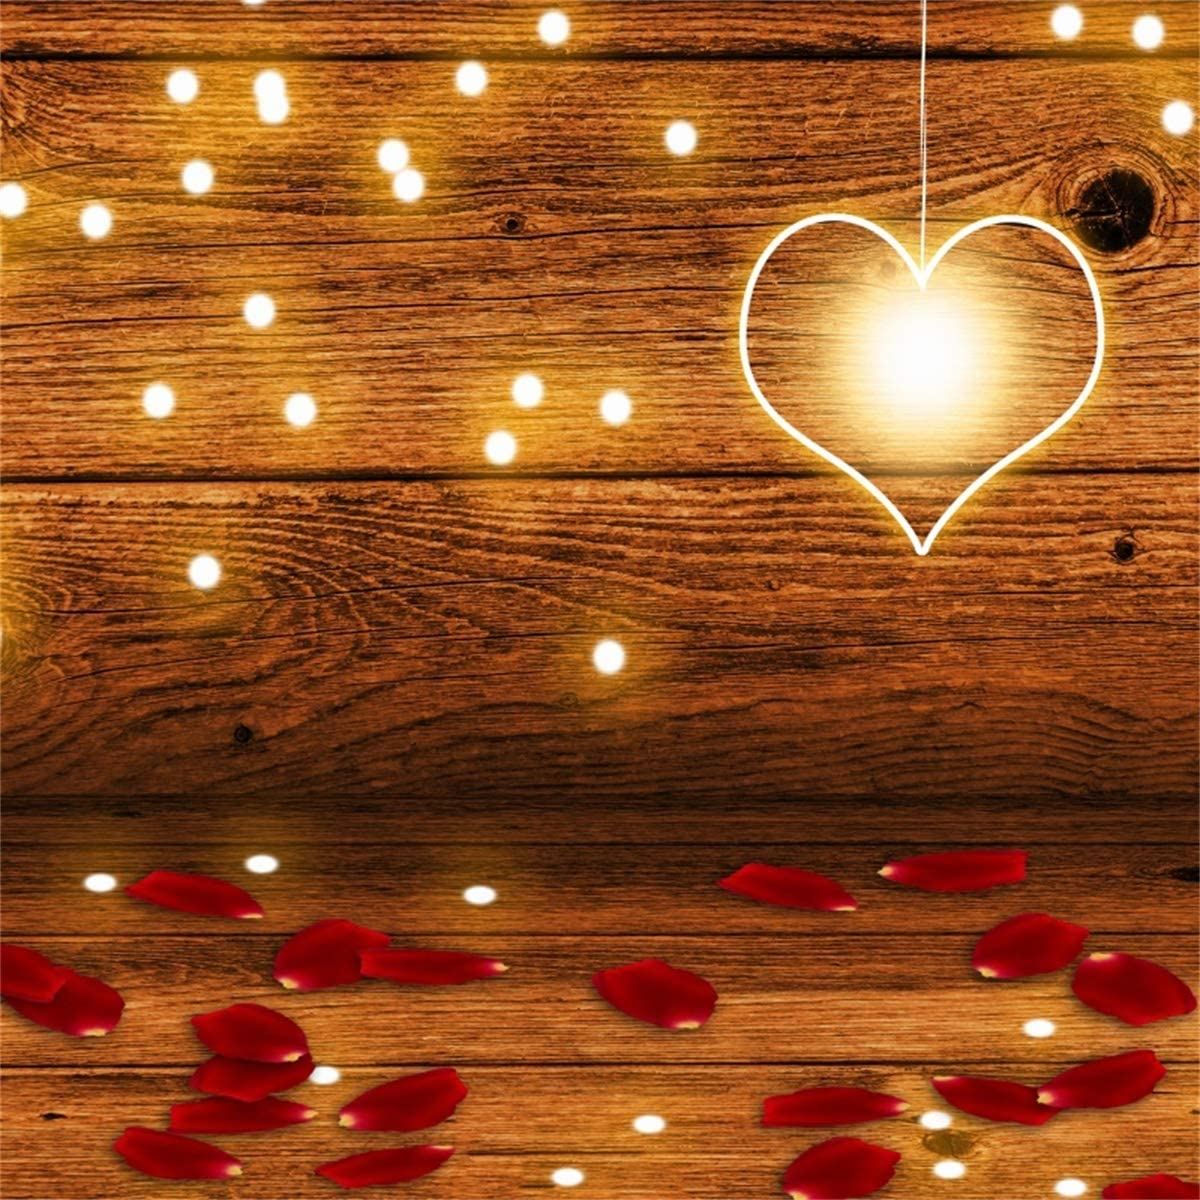 YEELE 9x9ft Love Theme Backdrop Romantic Lights and Roses Petals in a Cottage Photography Background Bridal Wedding Valentines Day Portrait Photoshoot Studio Props Digital Wallpaper